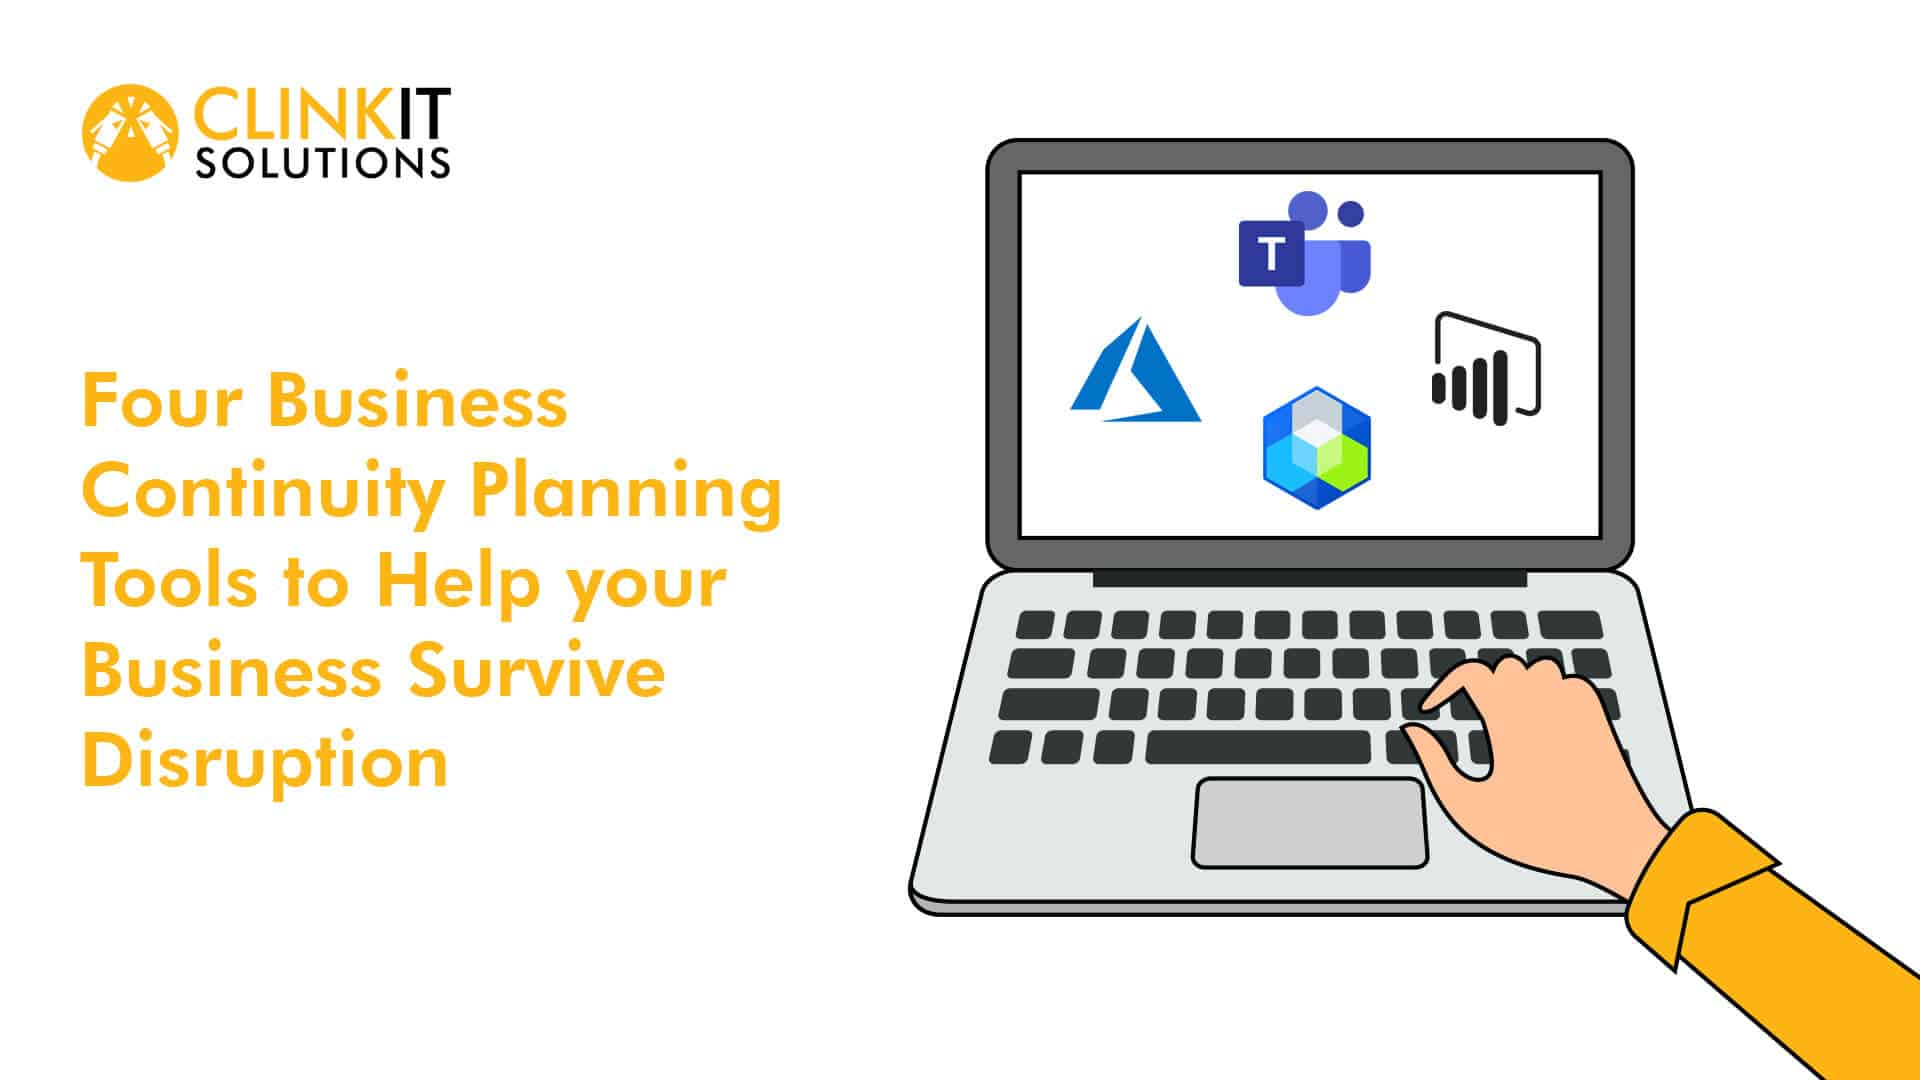 Four Business Continuity Planning Tools to Help your Business Survive Disruption